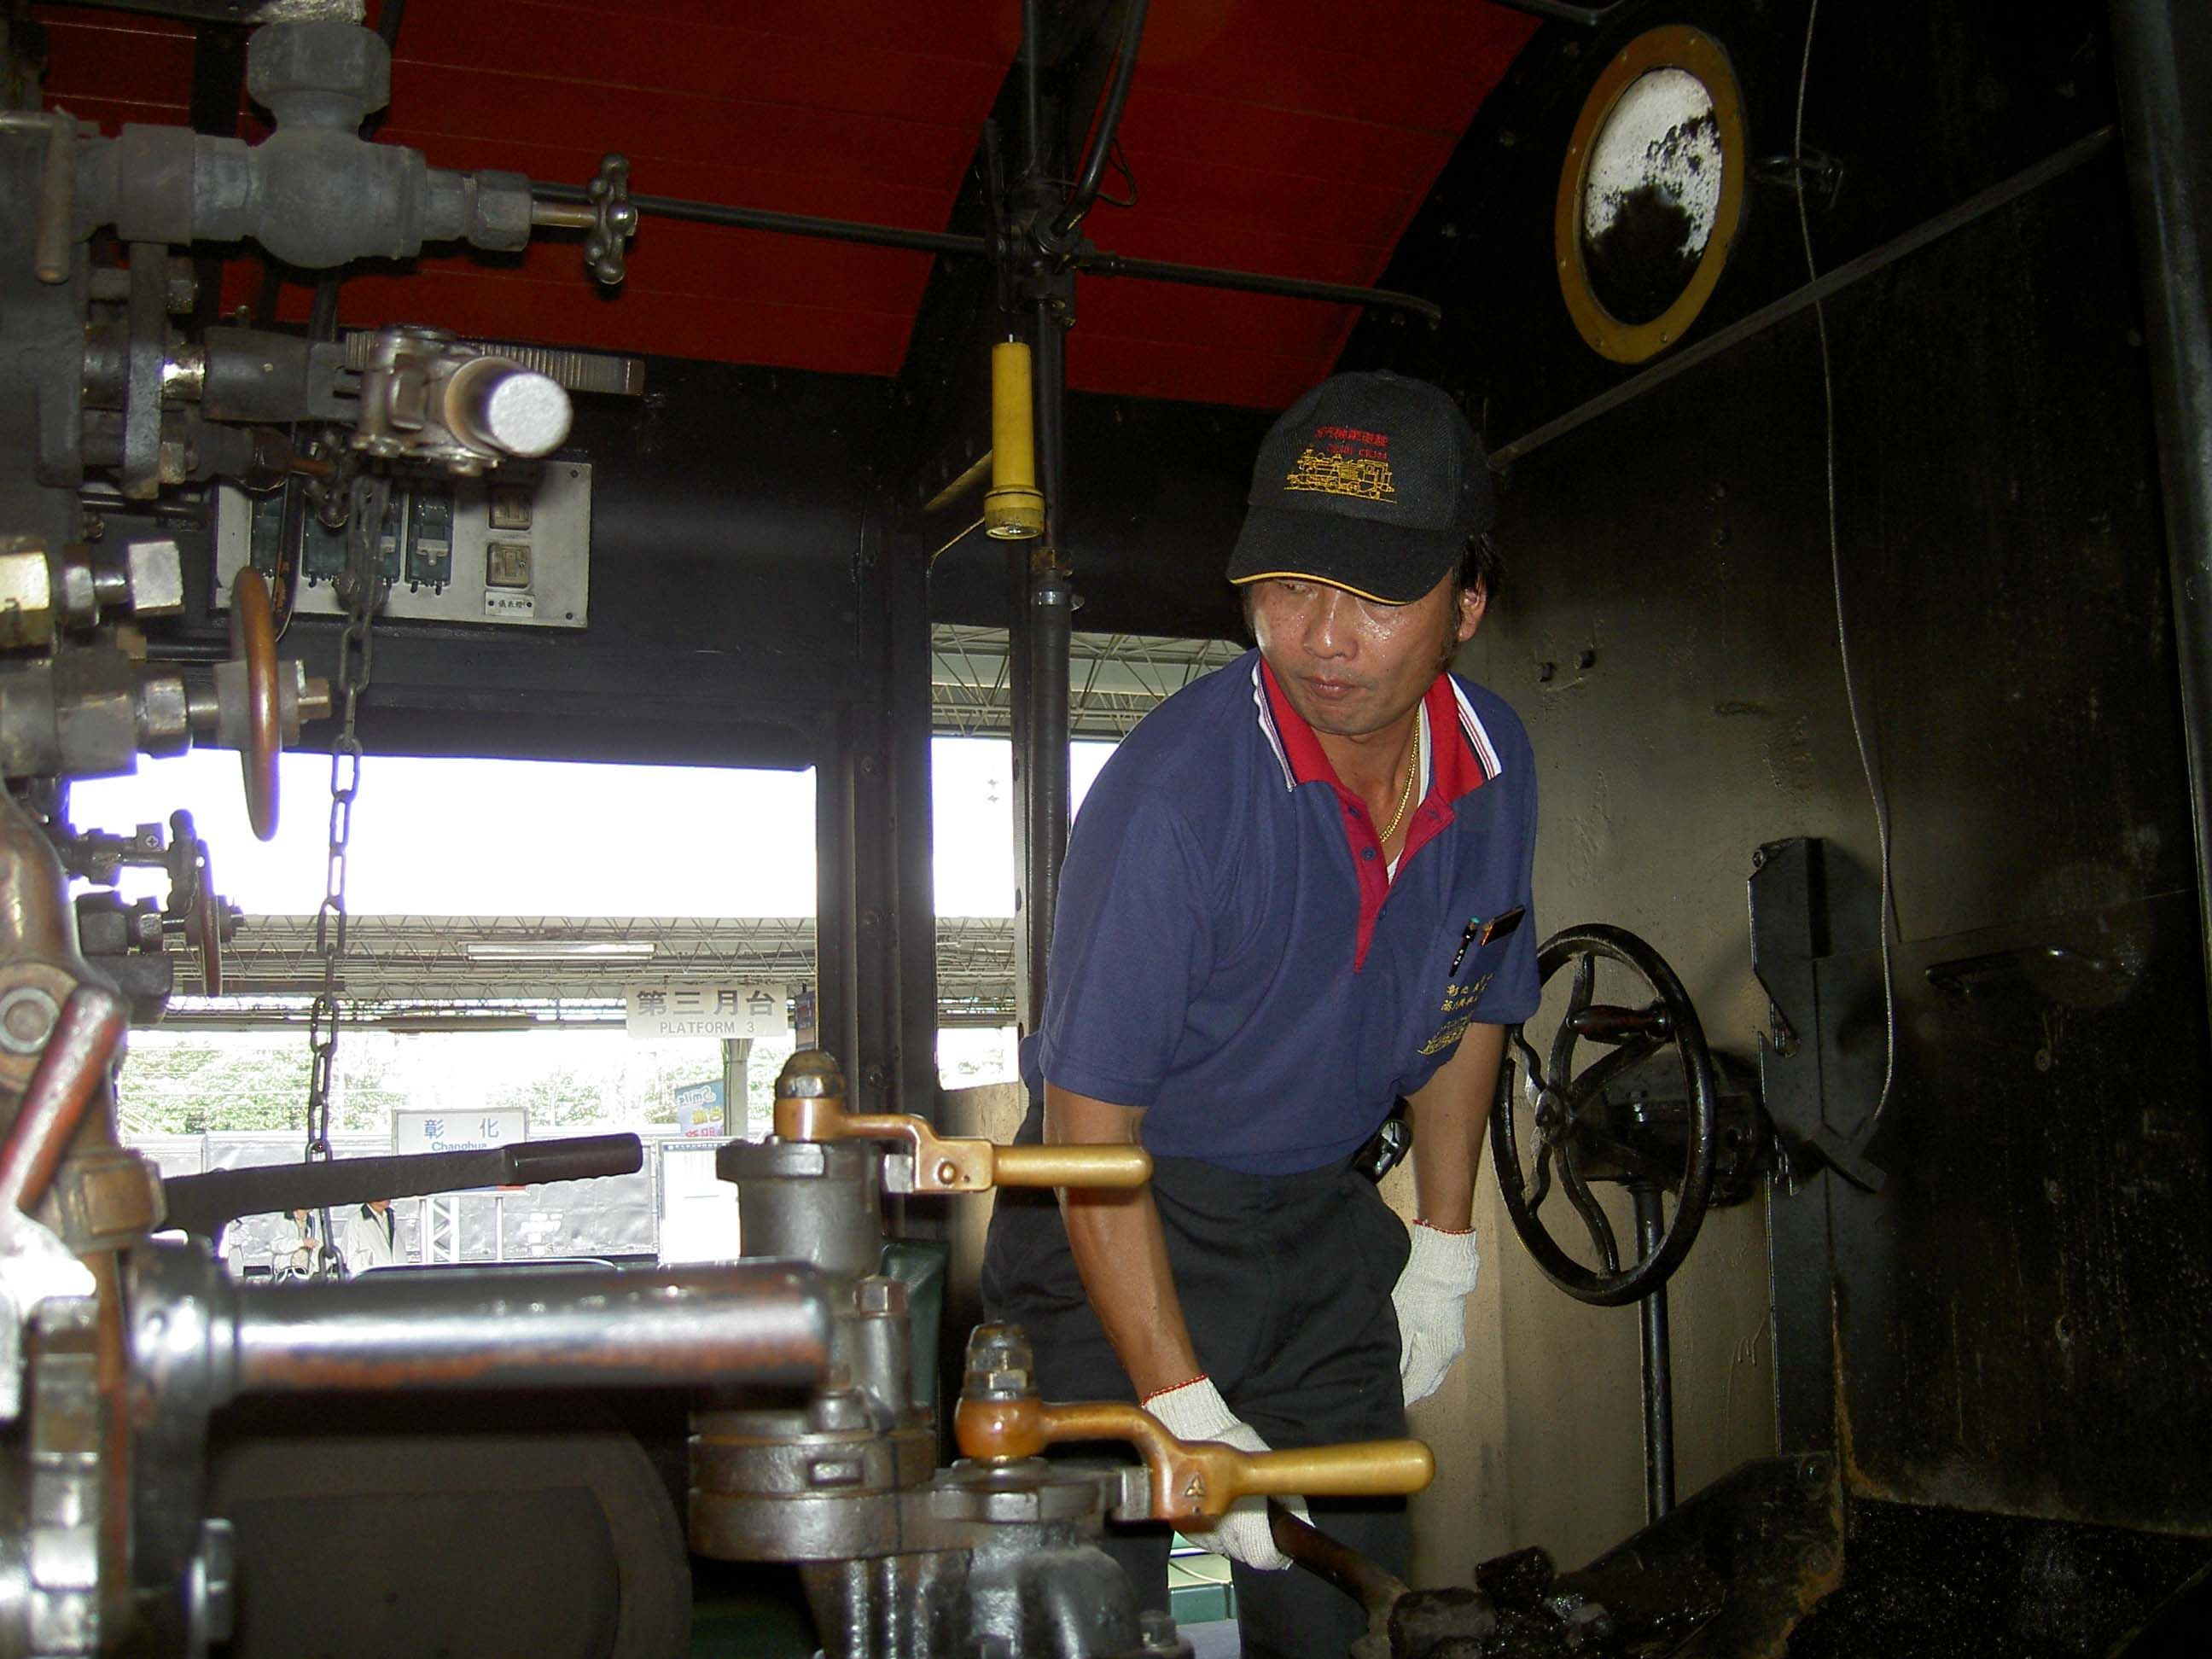 The driver's cabin in the steam locomotive engine is an intense working environment, with temperatures reaching up to 50 degrees Celsius.